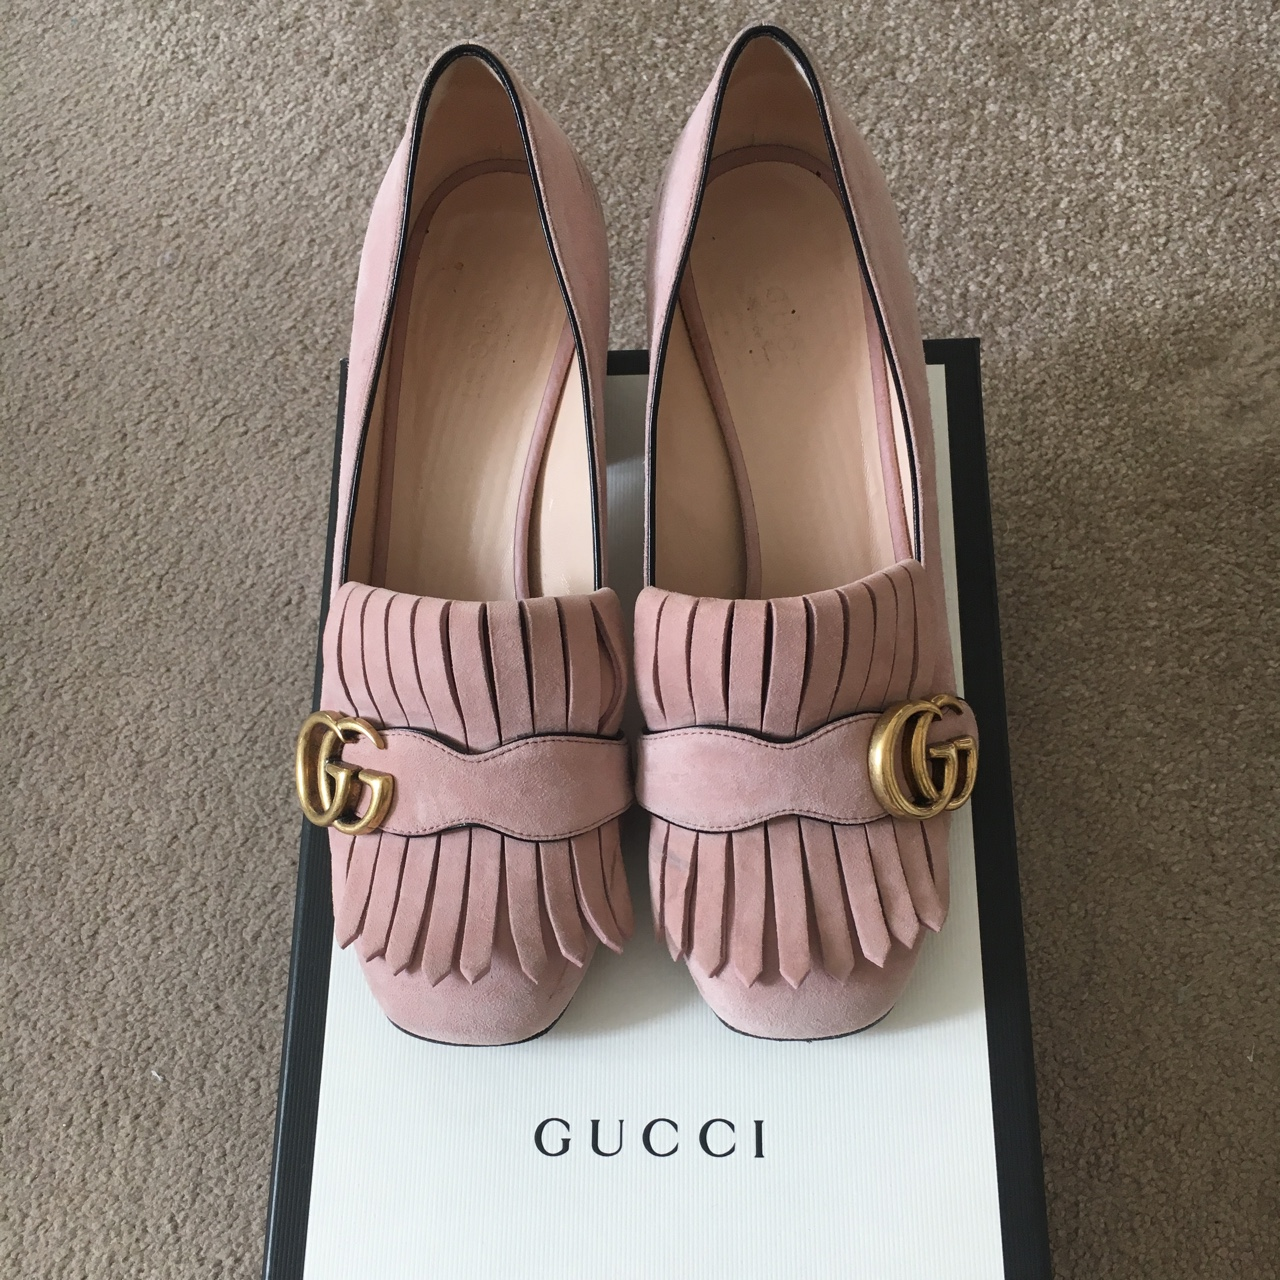 Gucci Marmont suede pink loafers size